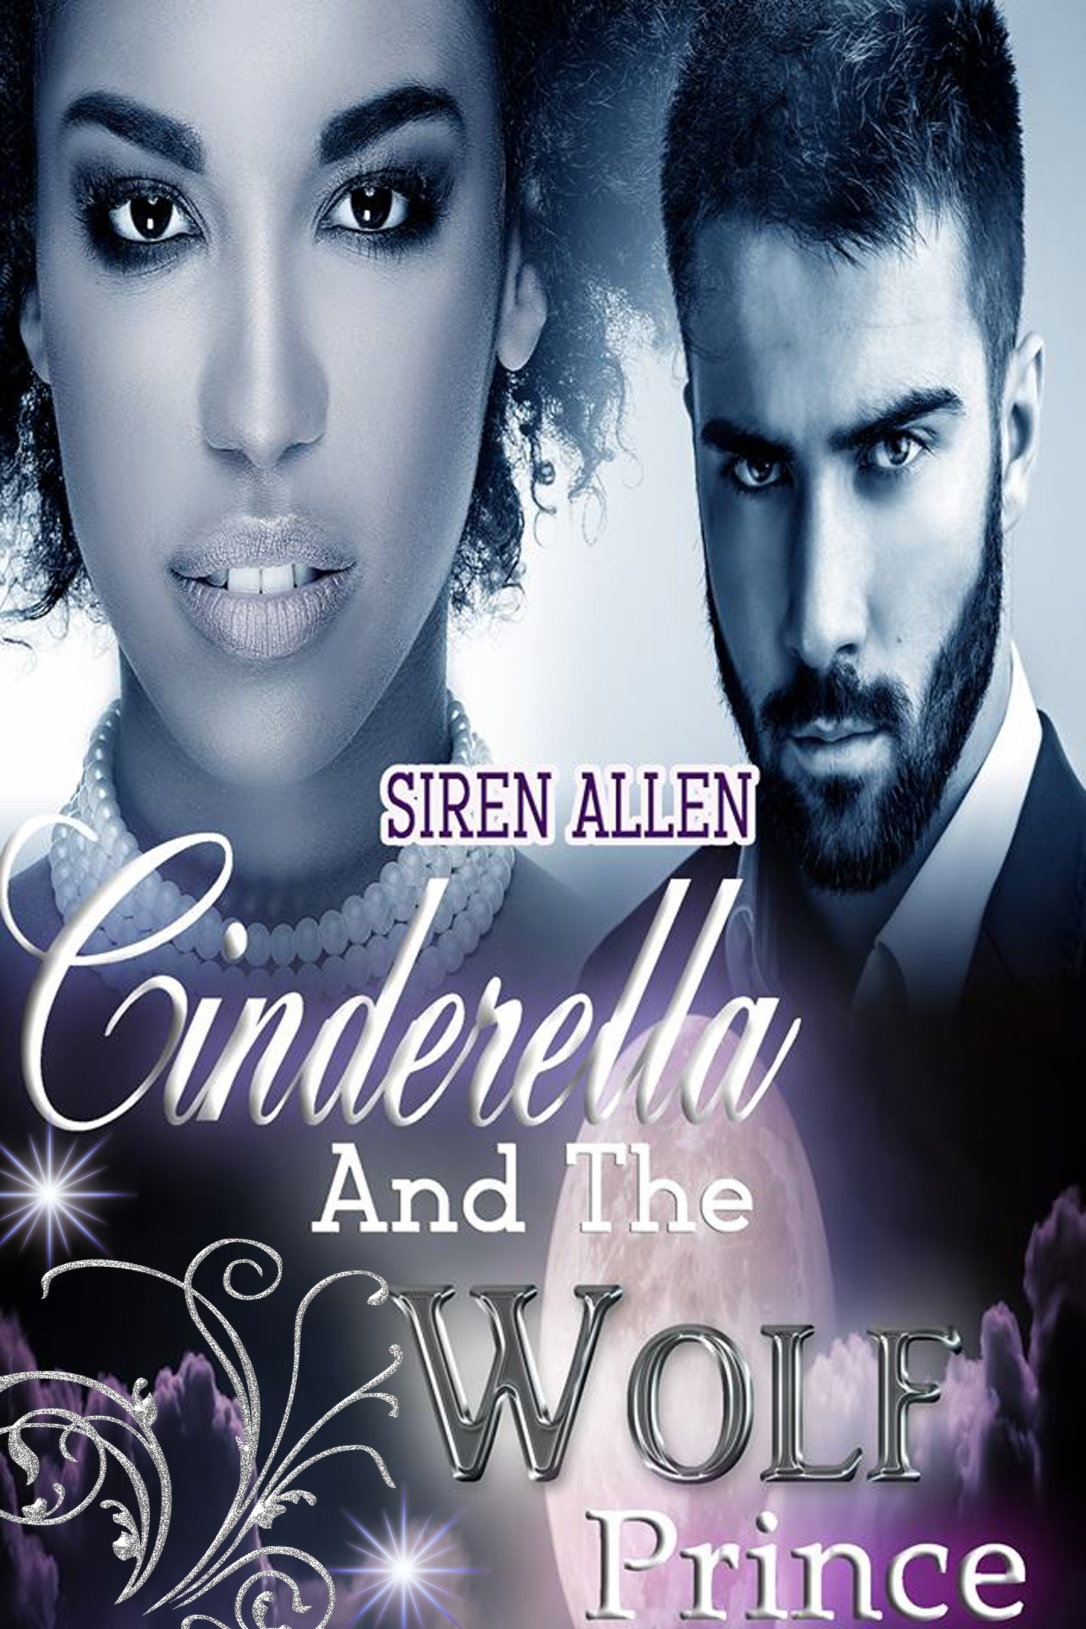 cinderella and the wolf princeAmazon